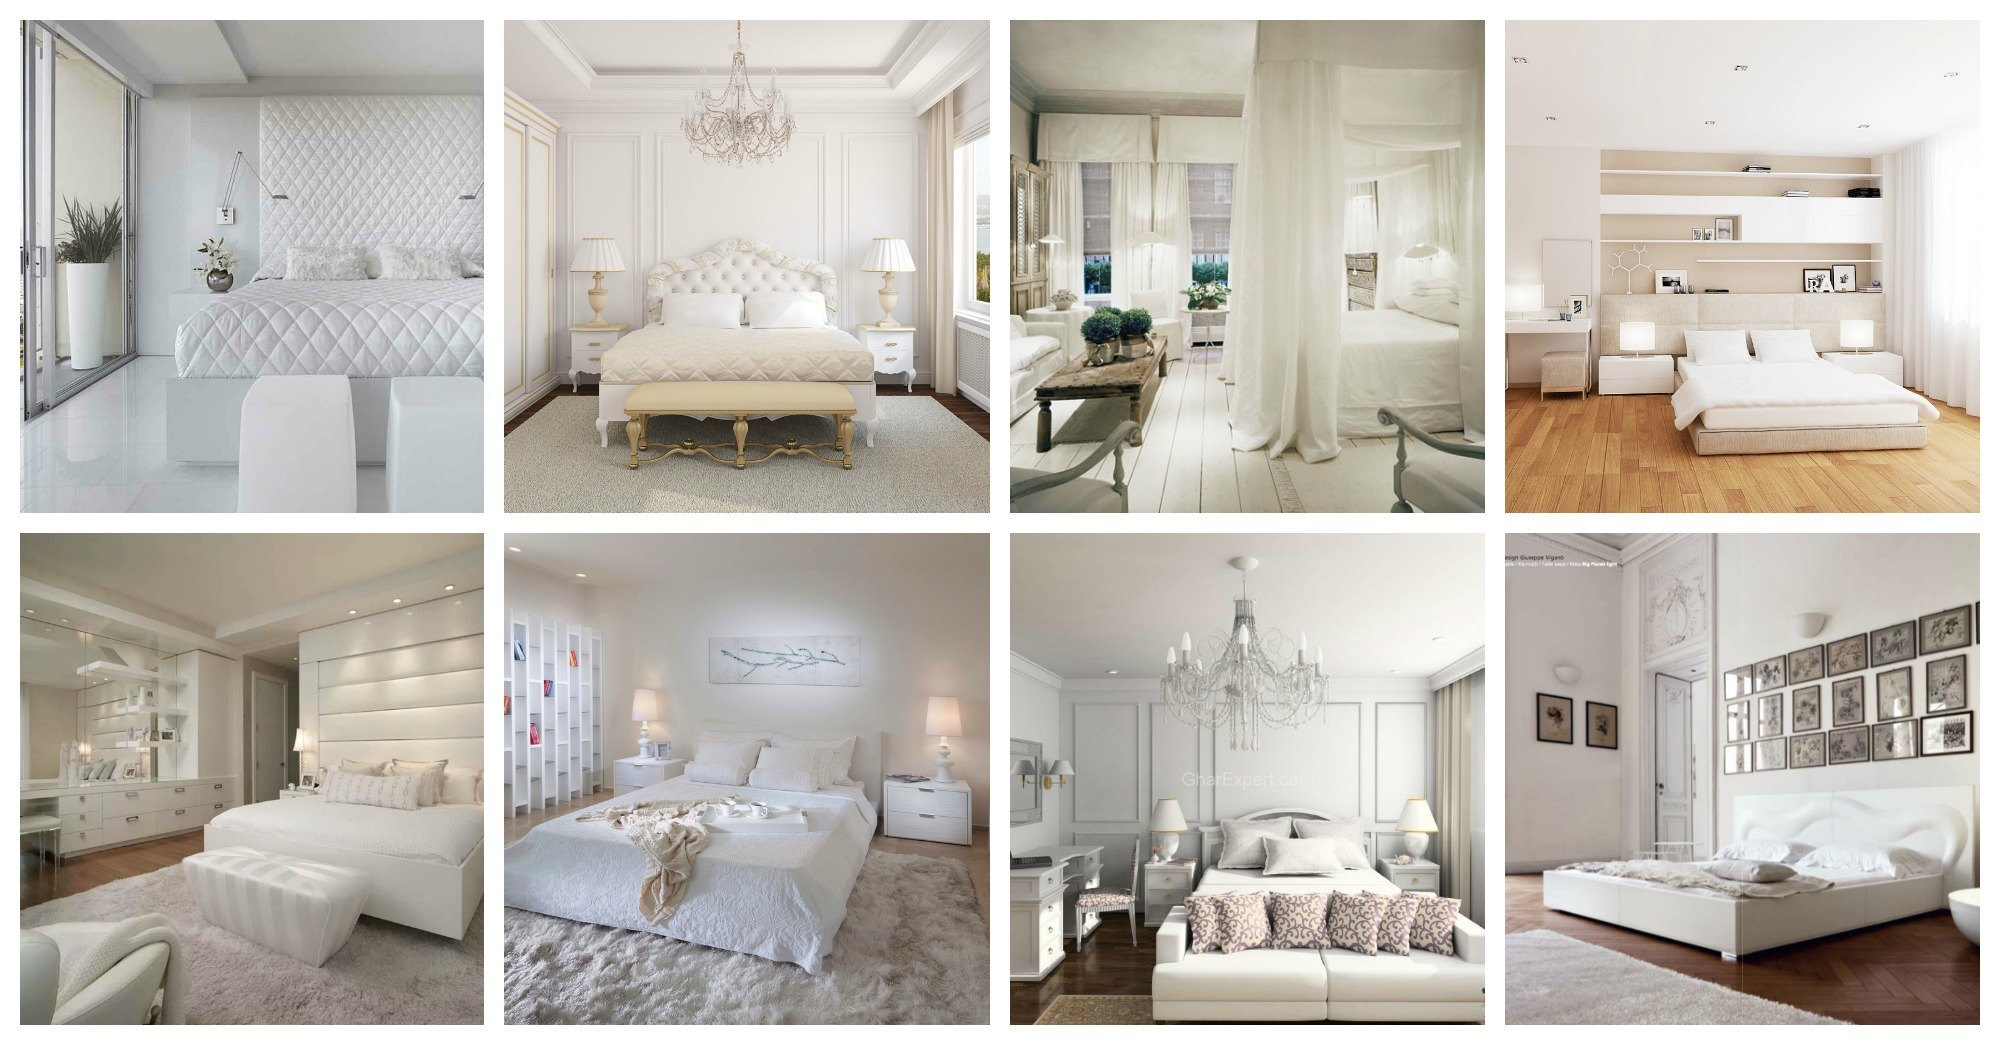 Stunning White Bedroom Designs That Will Take Your Breath Away